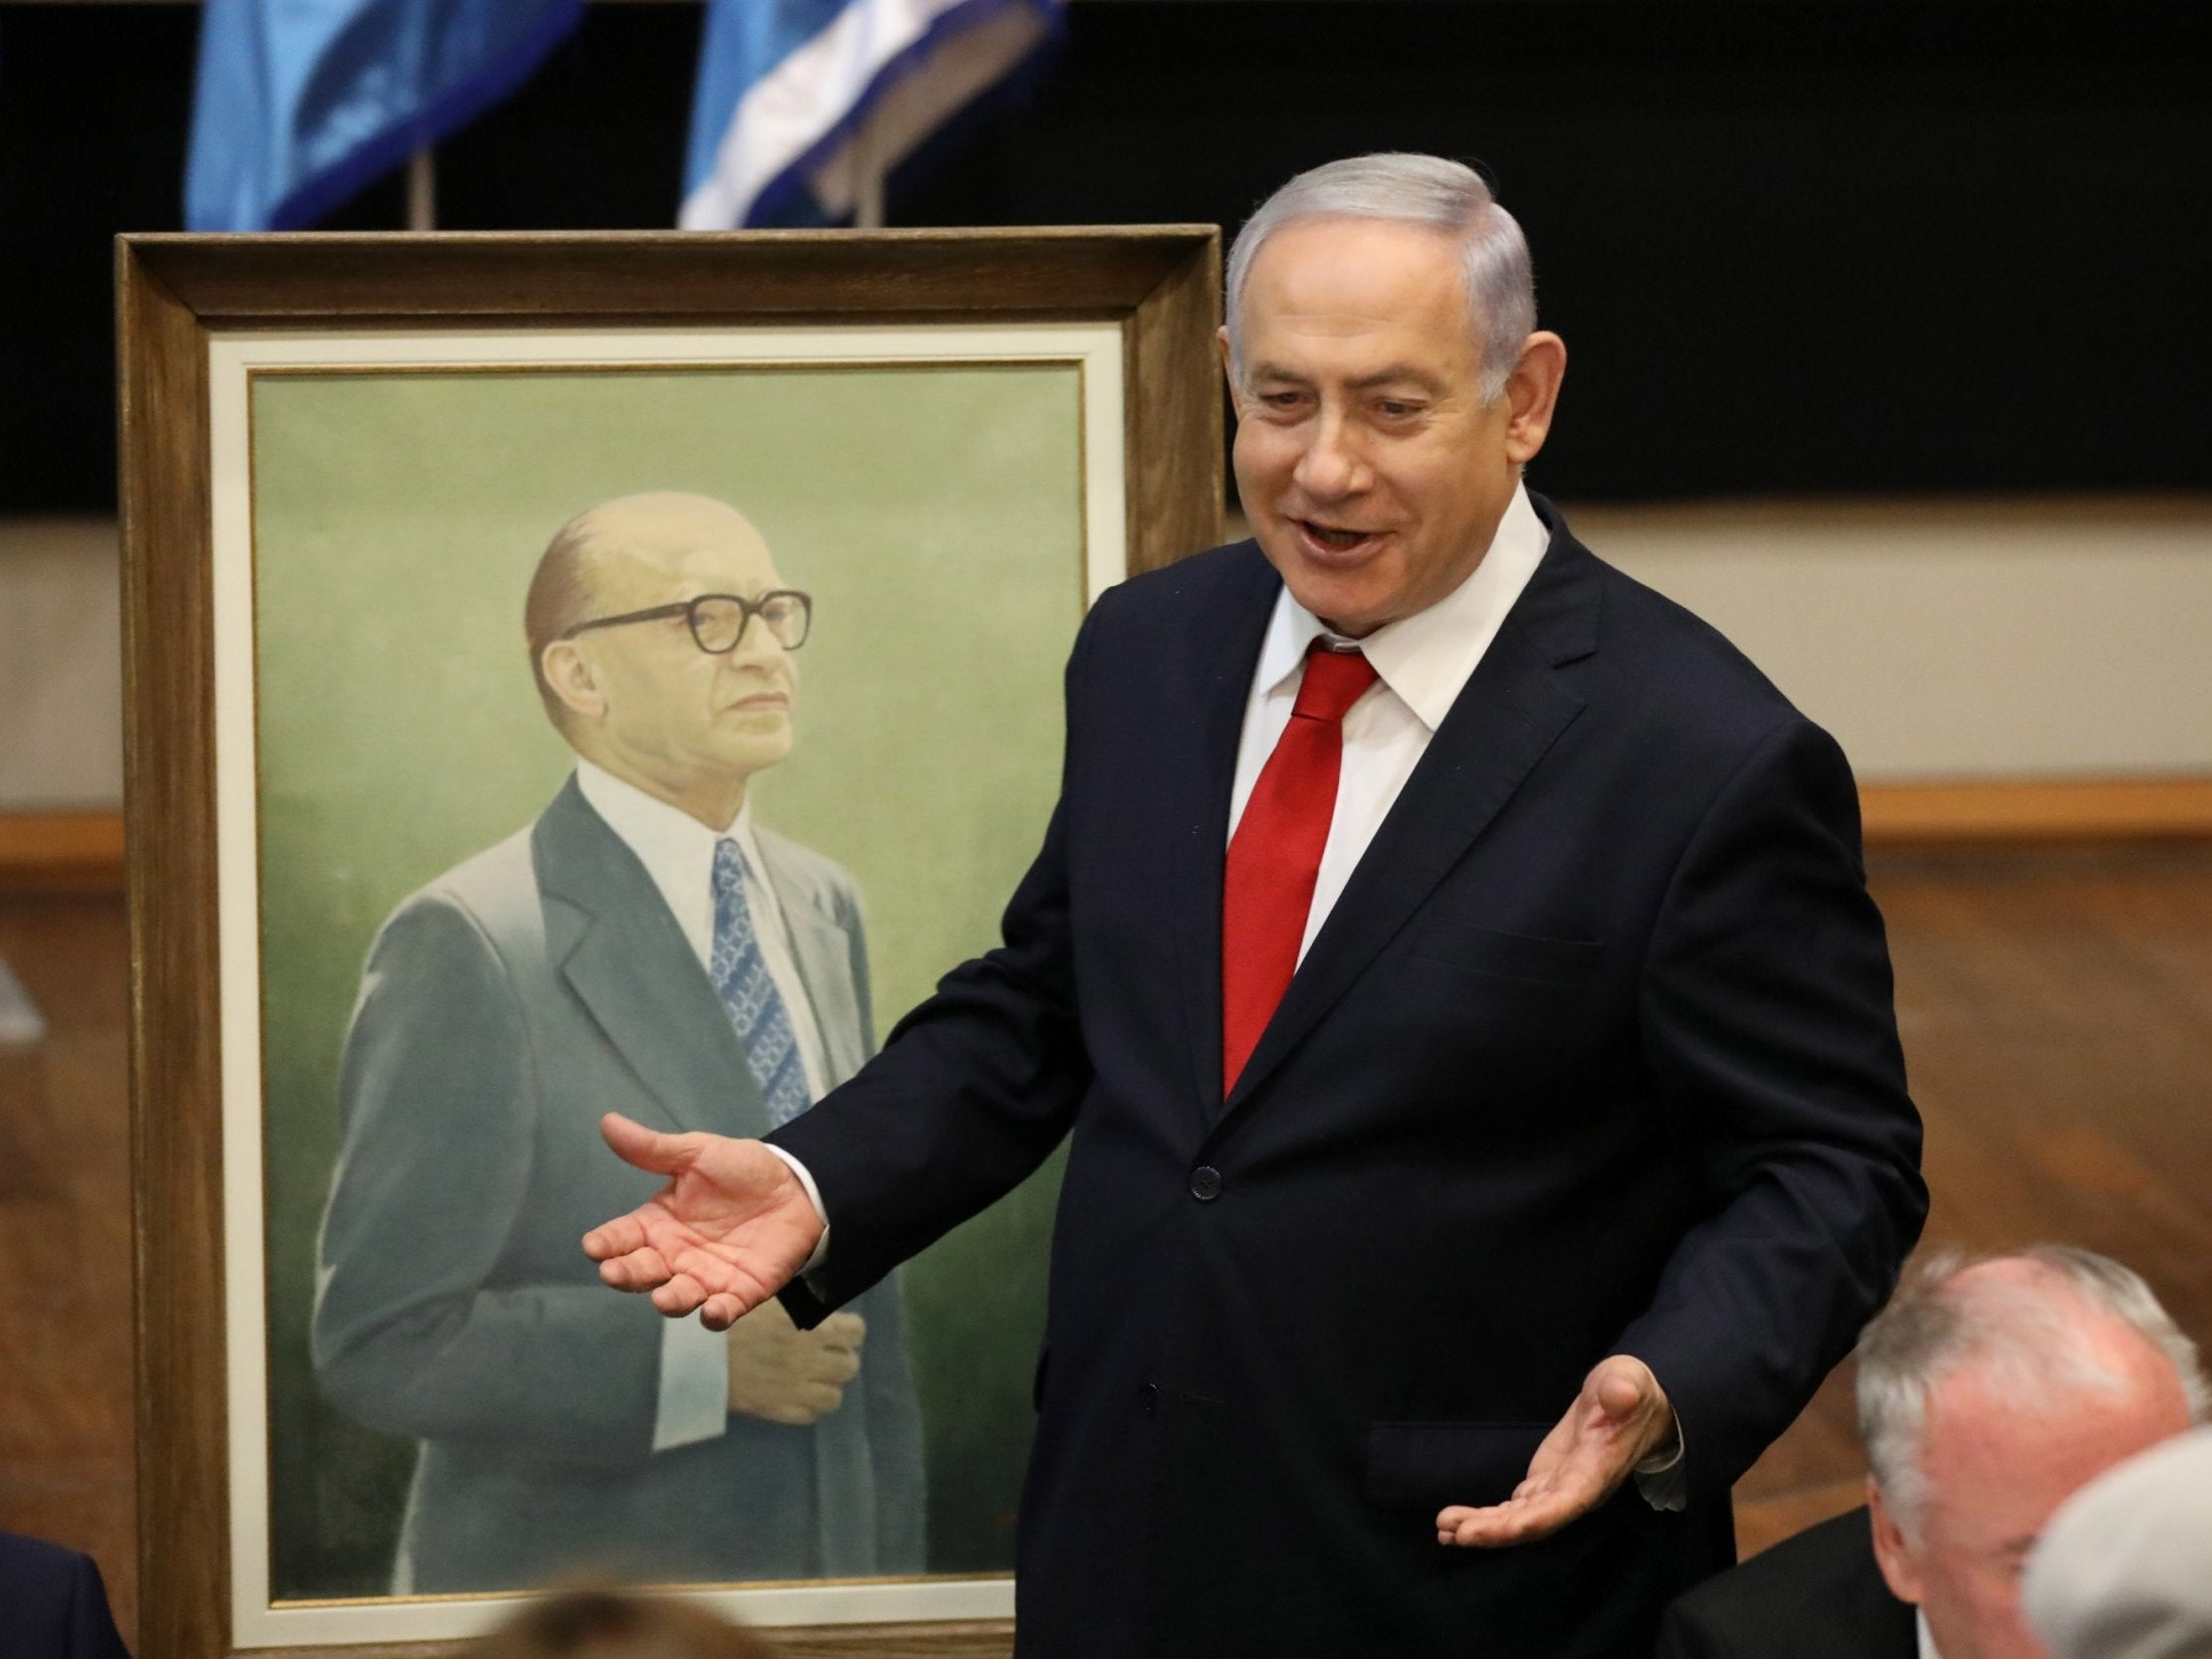 Israel is the only democracy in the Middle East? Netanyahu's comments have shattered that illusion